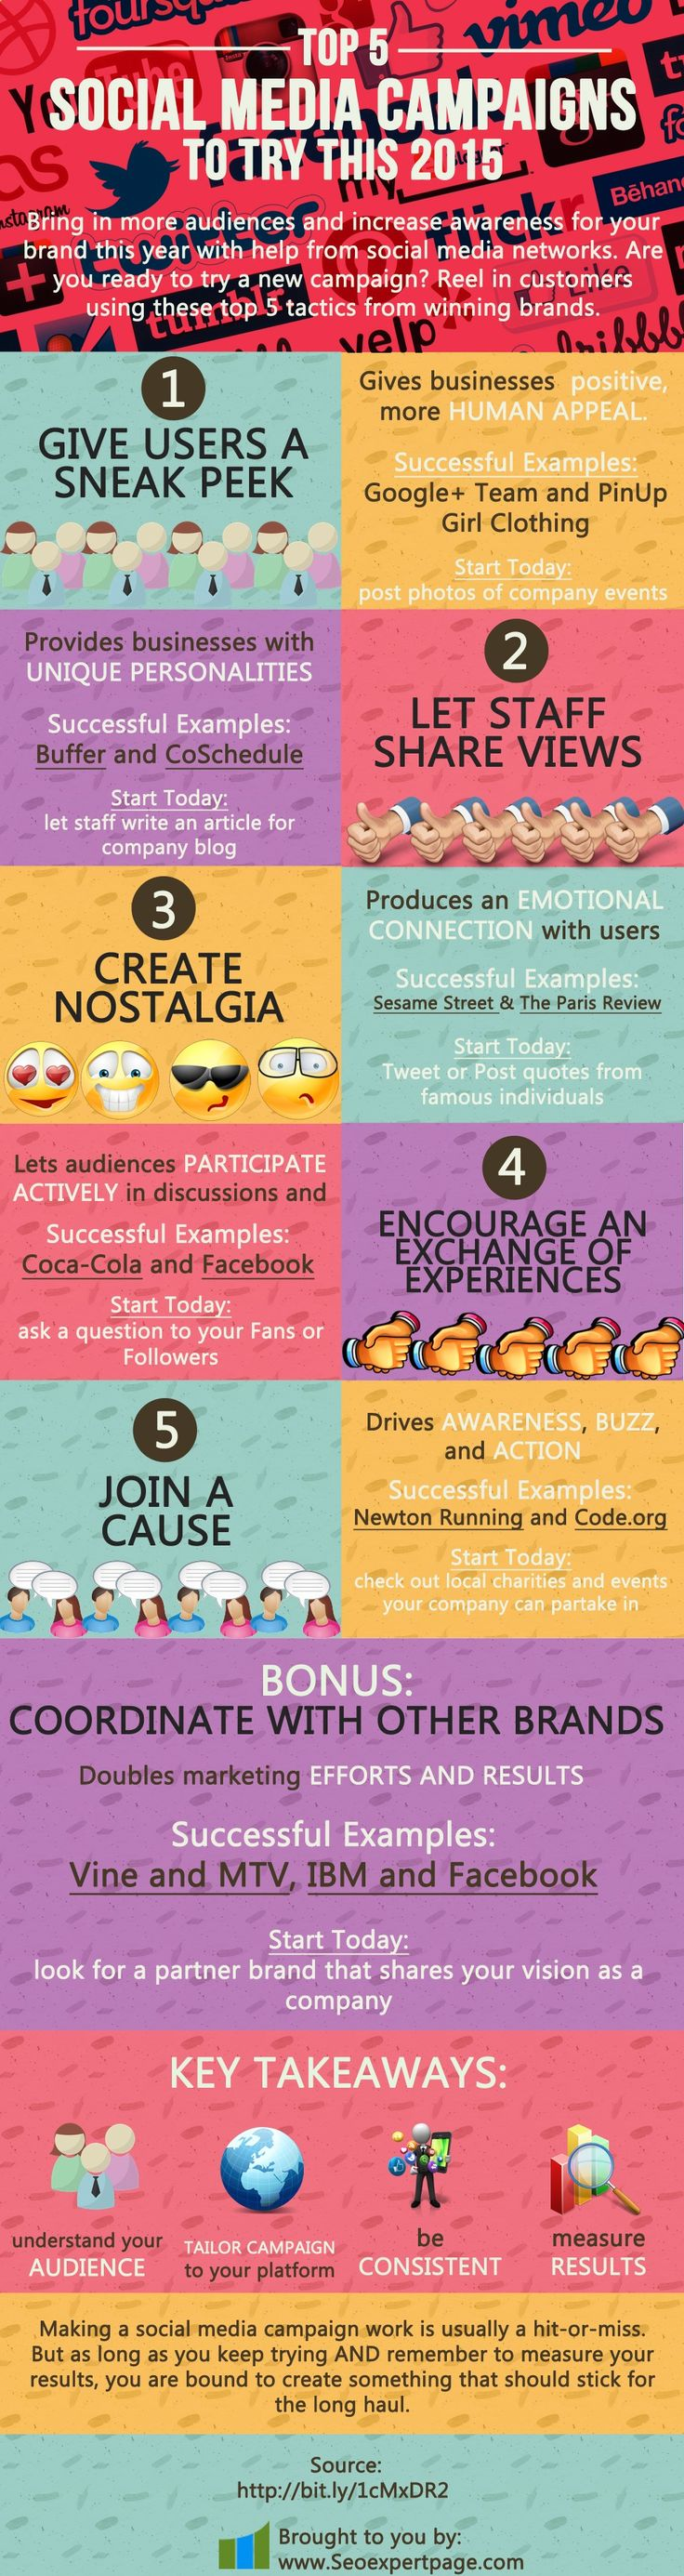 Top 5 Social Media Campaigns To Try This 2015 - Cendrine Marrouat | via Mary Lumley | BornToBeSocial.com | Pinterest Marketing & Training, France learn more here:  http://jvz9.com/c/459377/216079